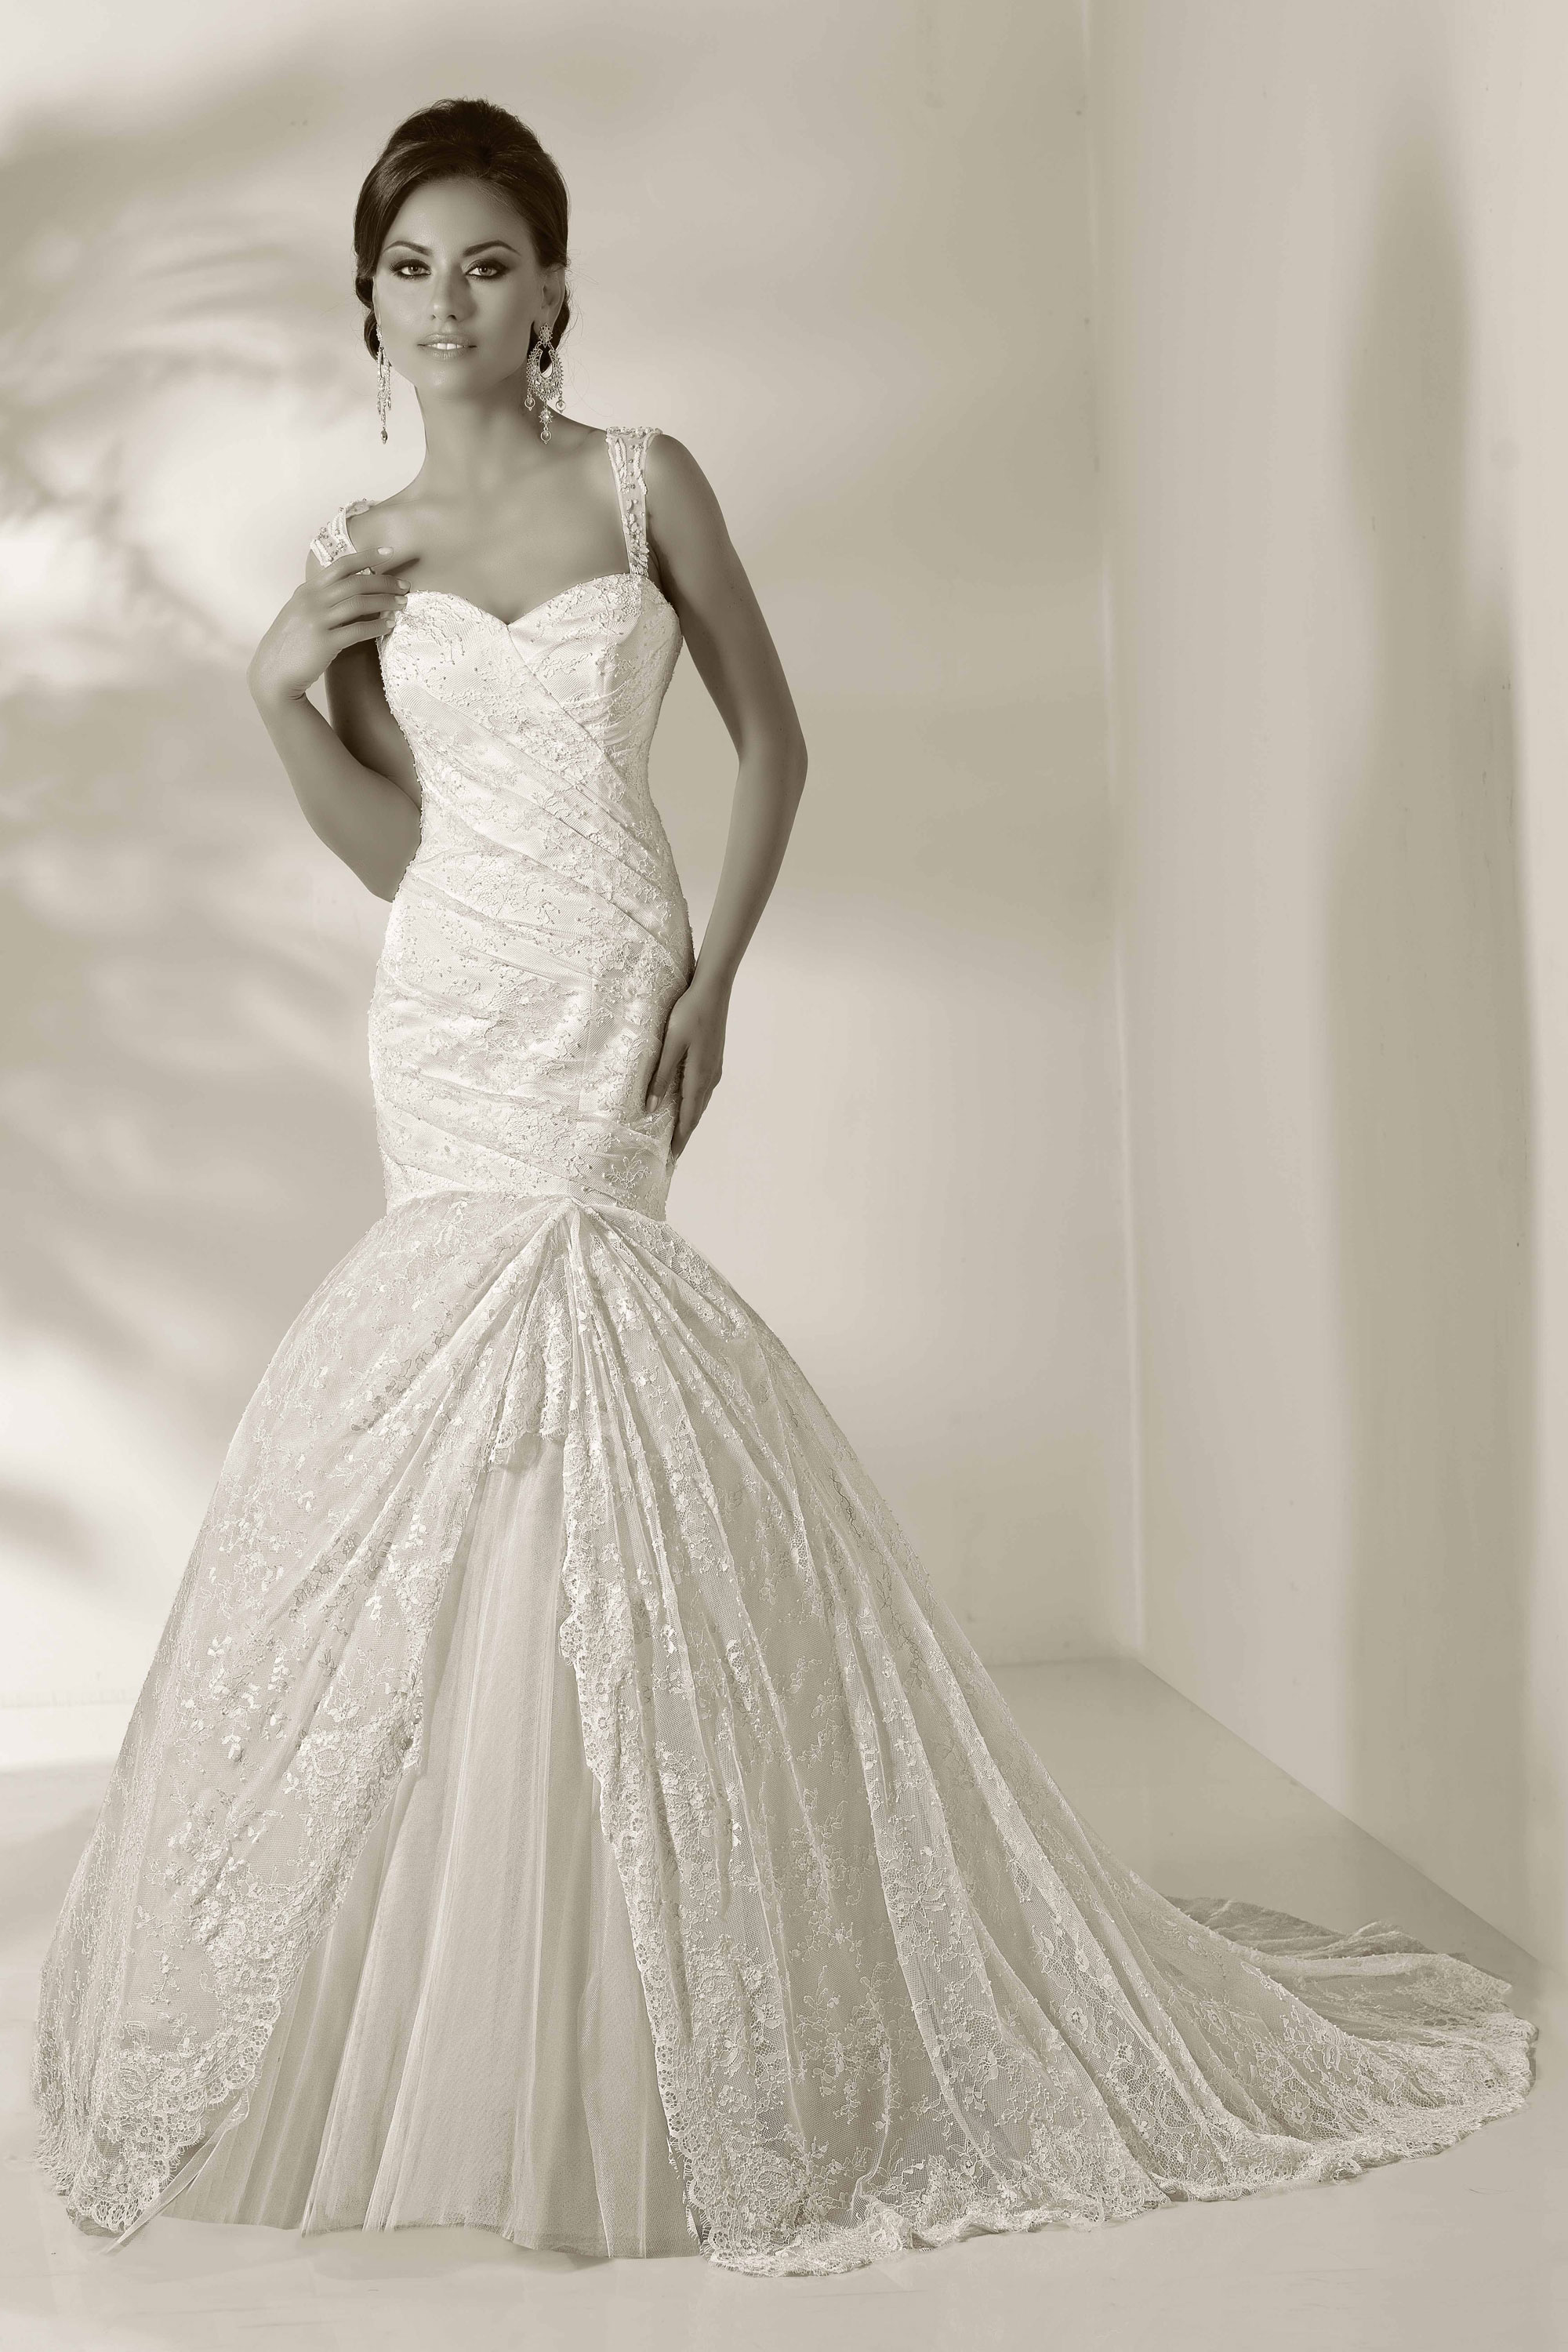 cristiano-lucci-wedding-dresses-7-01052014